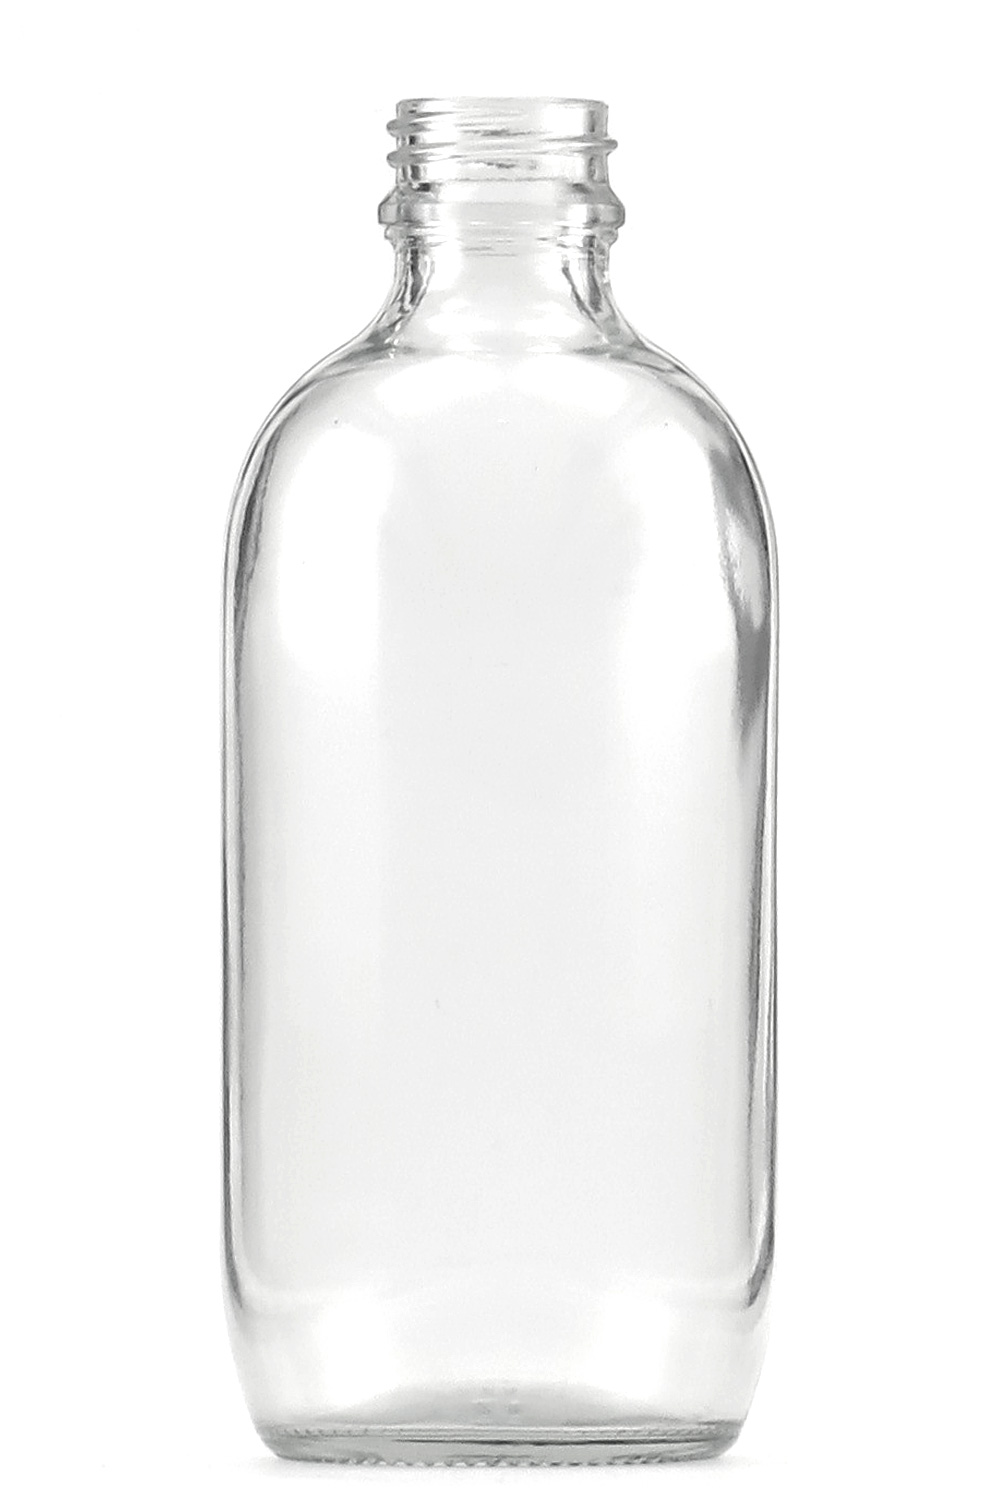 500ml Clear / Flint Glass Round - Pharma Bottle (Pack of 20) - Click Image to Close